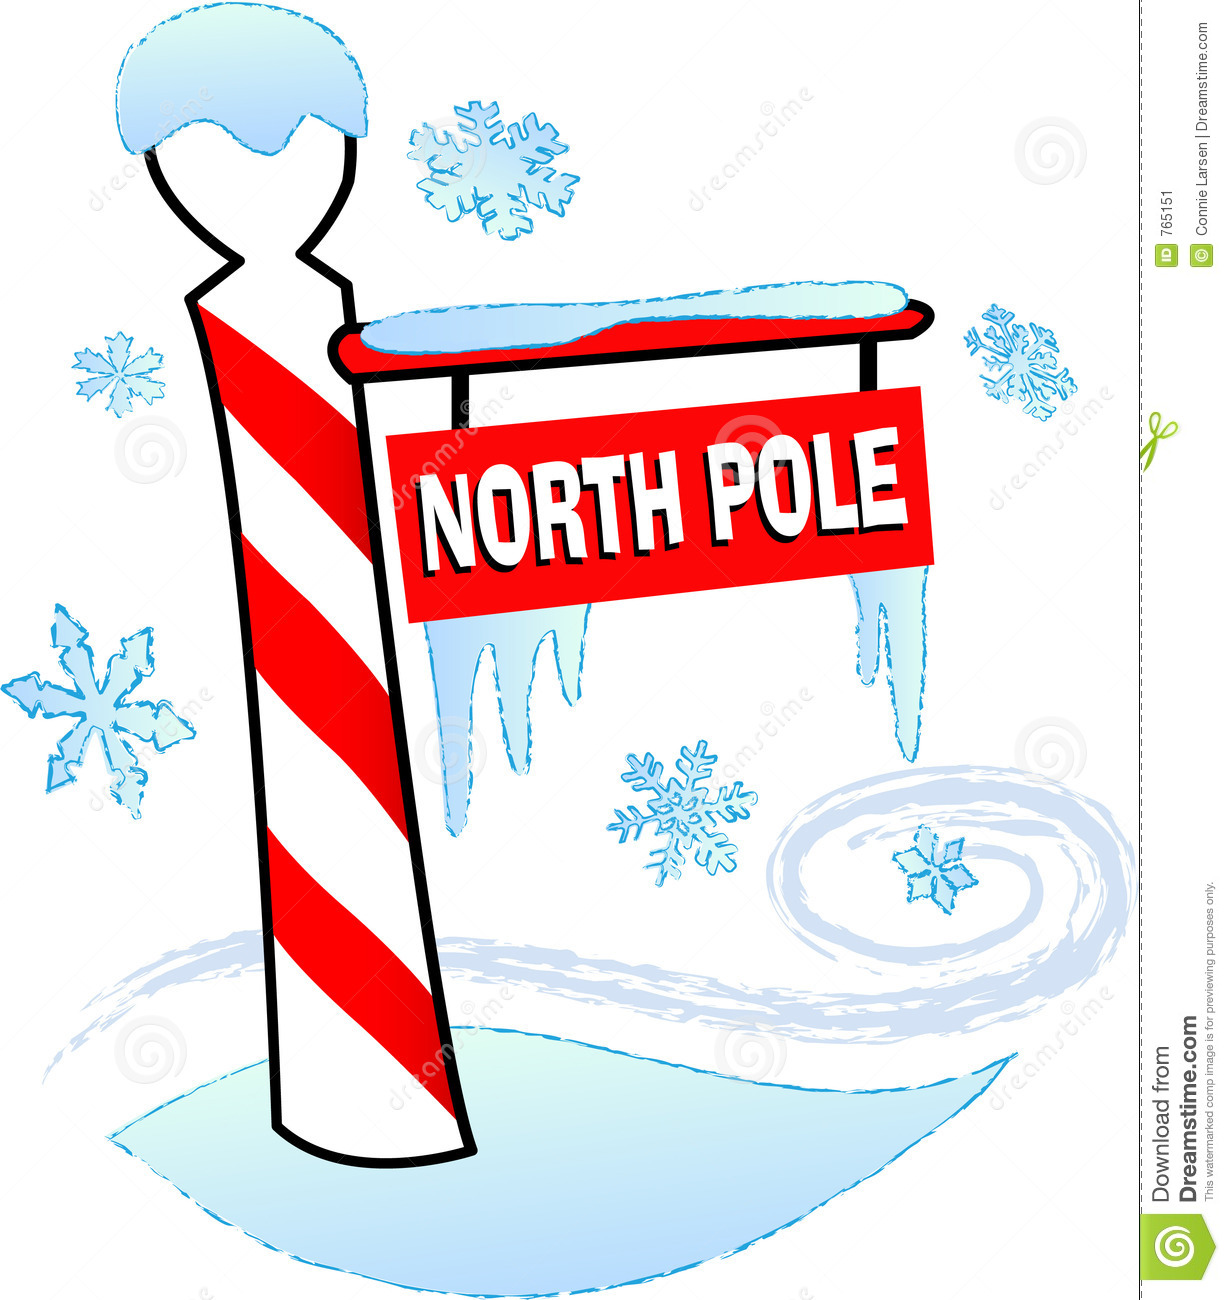 Illustration of a north pole sign surrounded by snow and ice.